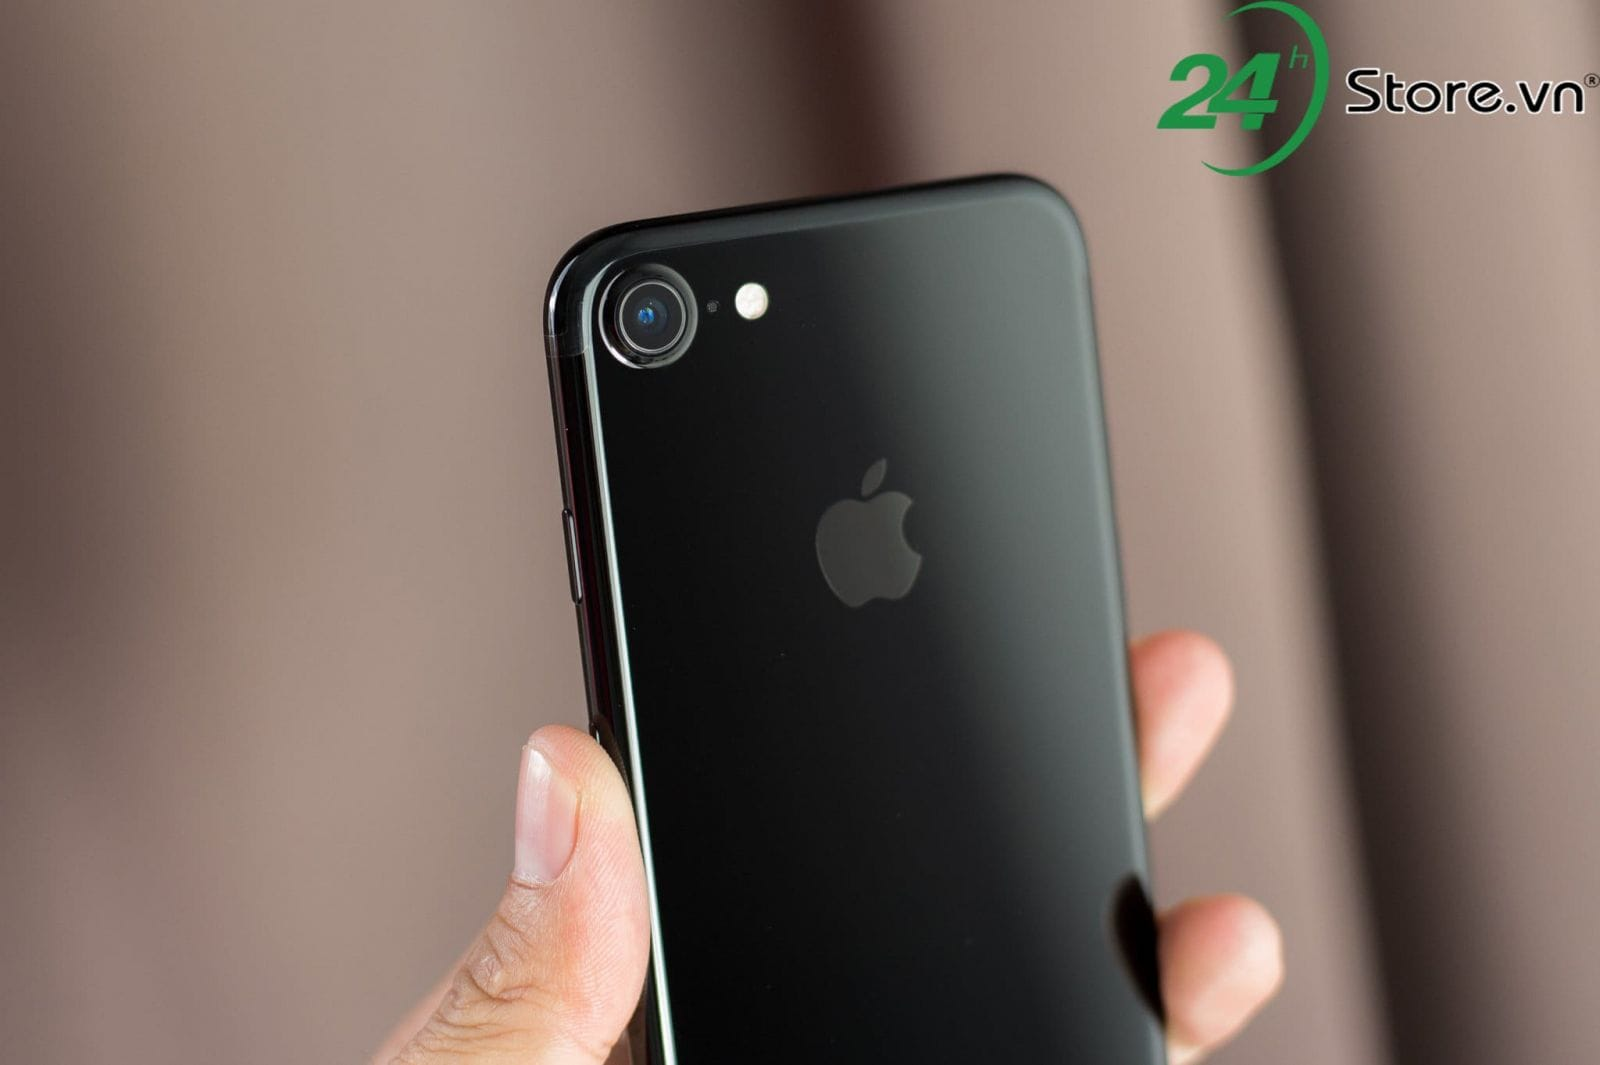 5 ly do khien ban nen mua iphone 7 cu hon iphone x hinh 4 min